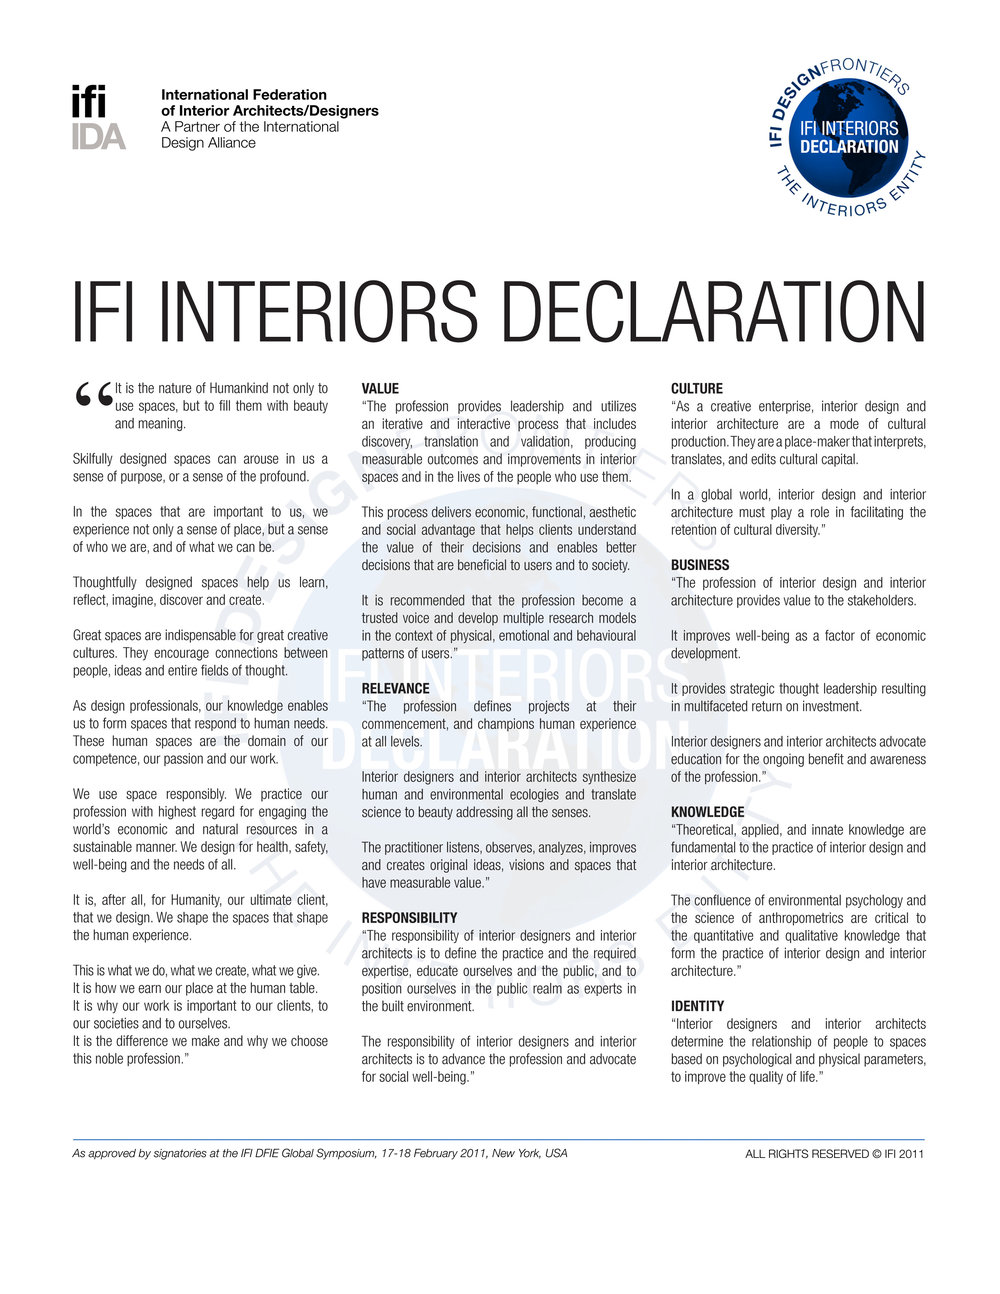 IFI Interiors Declaration_041311.jpg